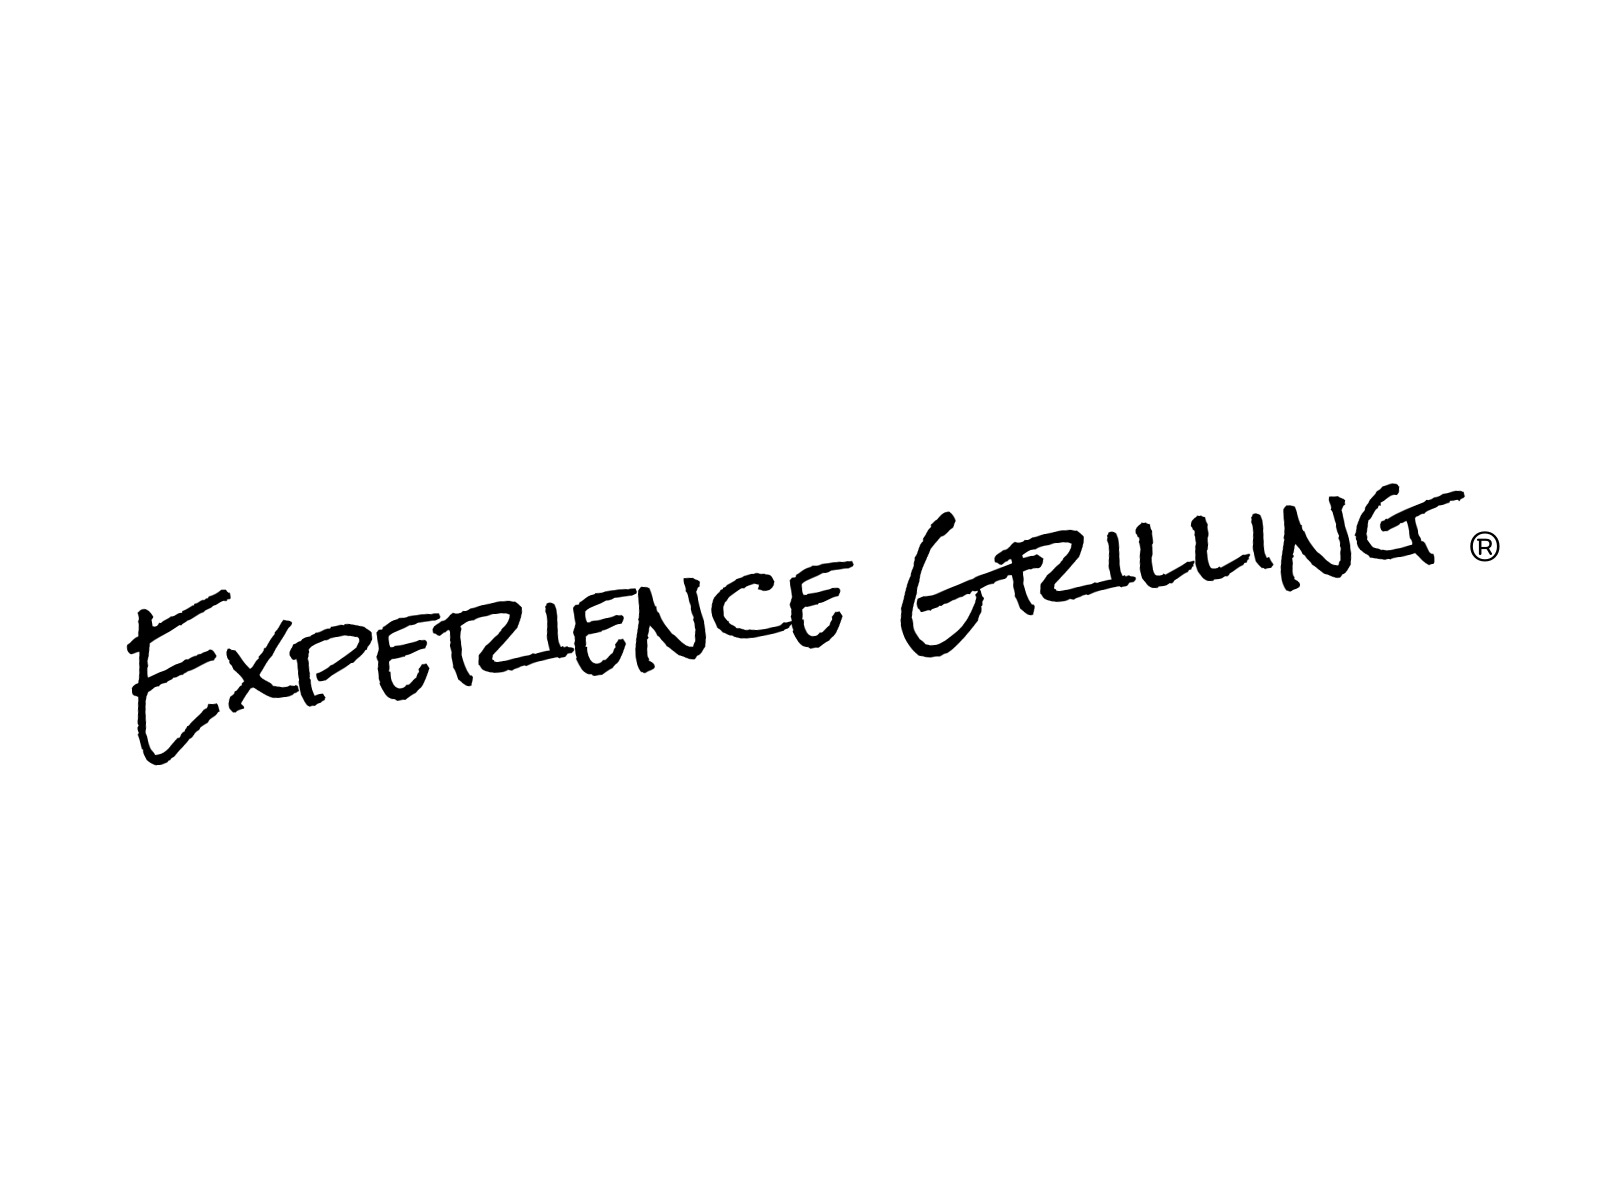 Experience Grilling.jpg